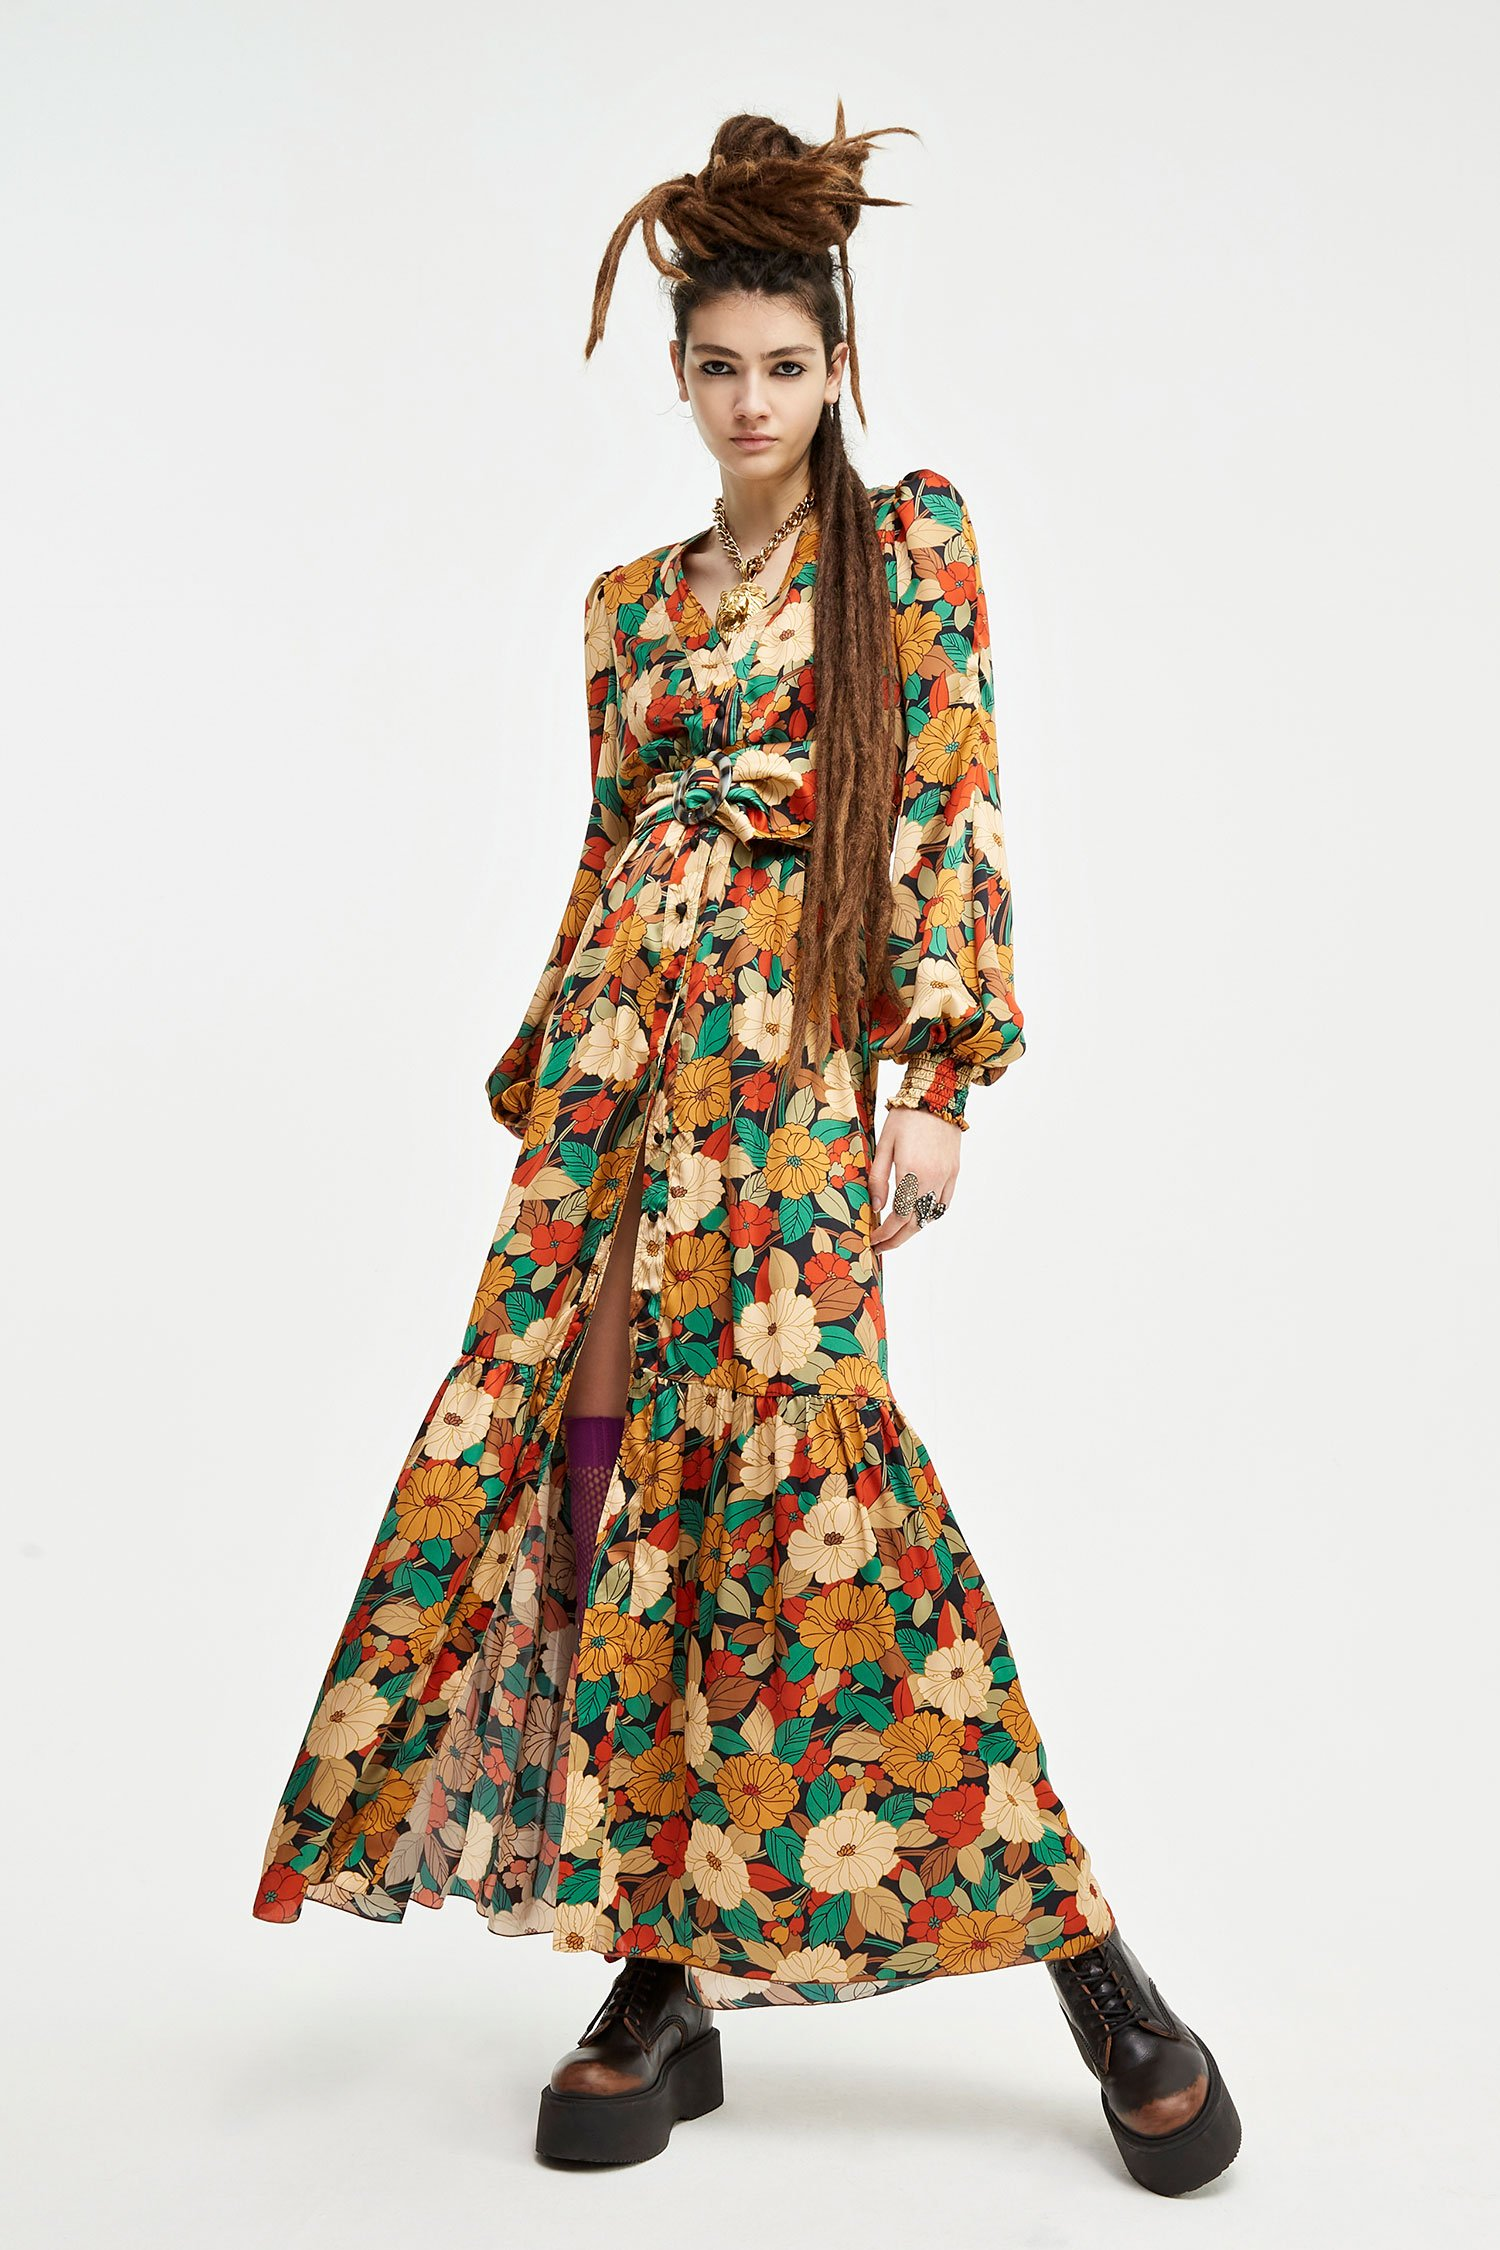 SHOPPING ON LINE ANIYE BY  LONG DRESS BLOSSOM NEW COLLECTION  WOMEN'S FALL/WINTER 2022